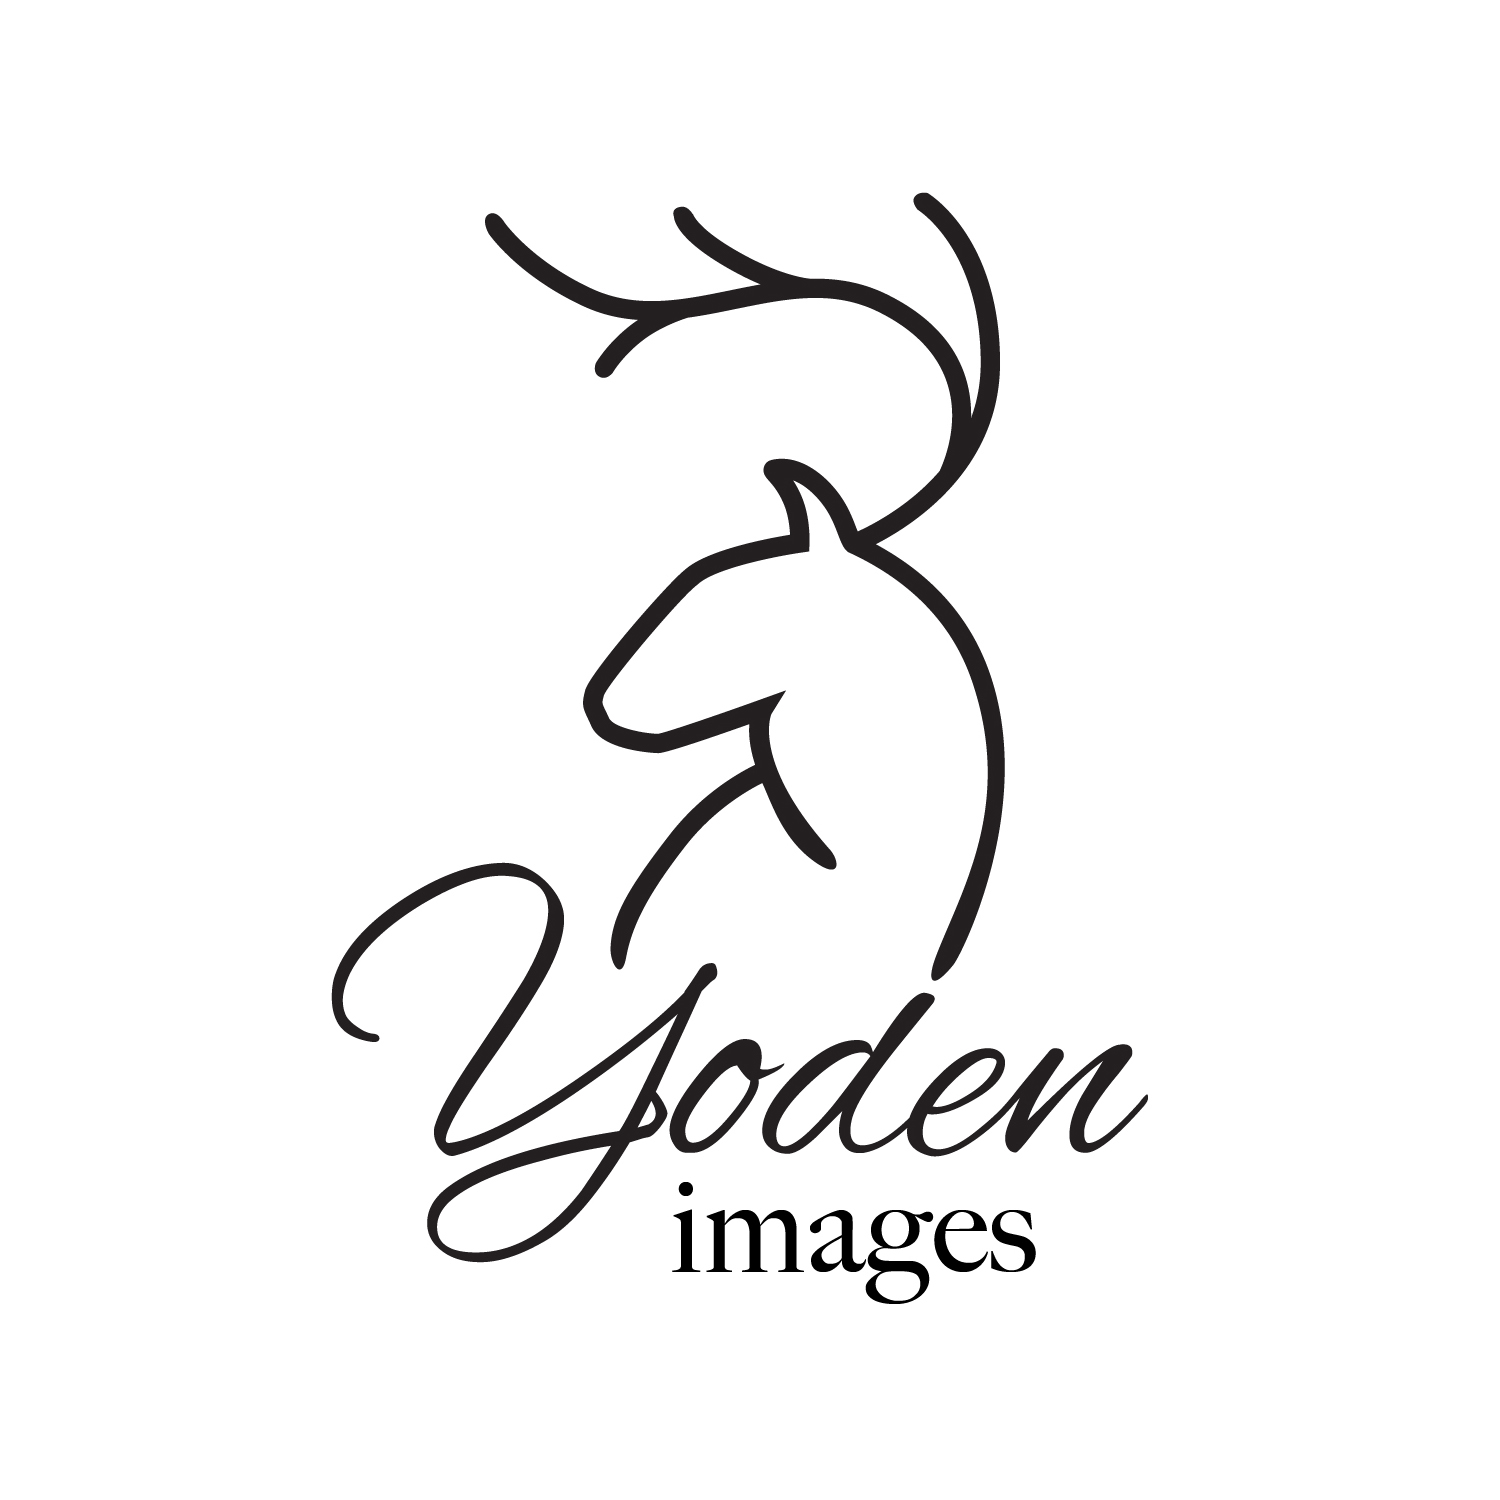 Yoden Images